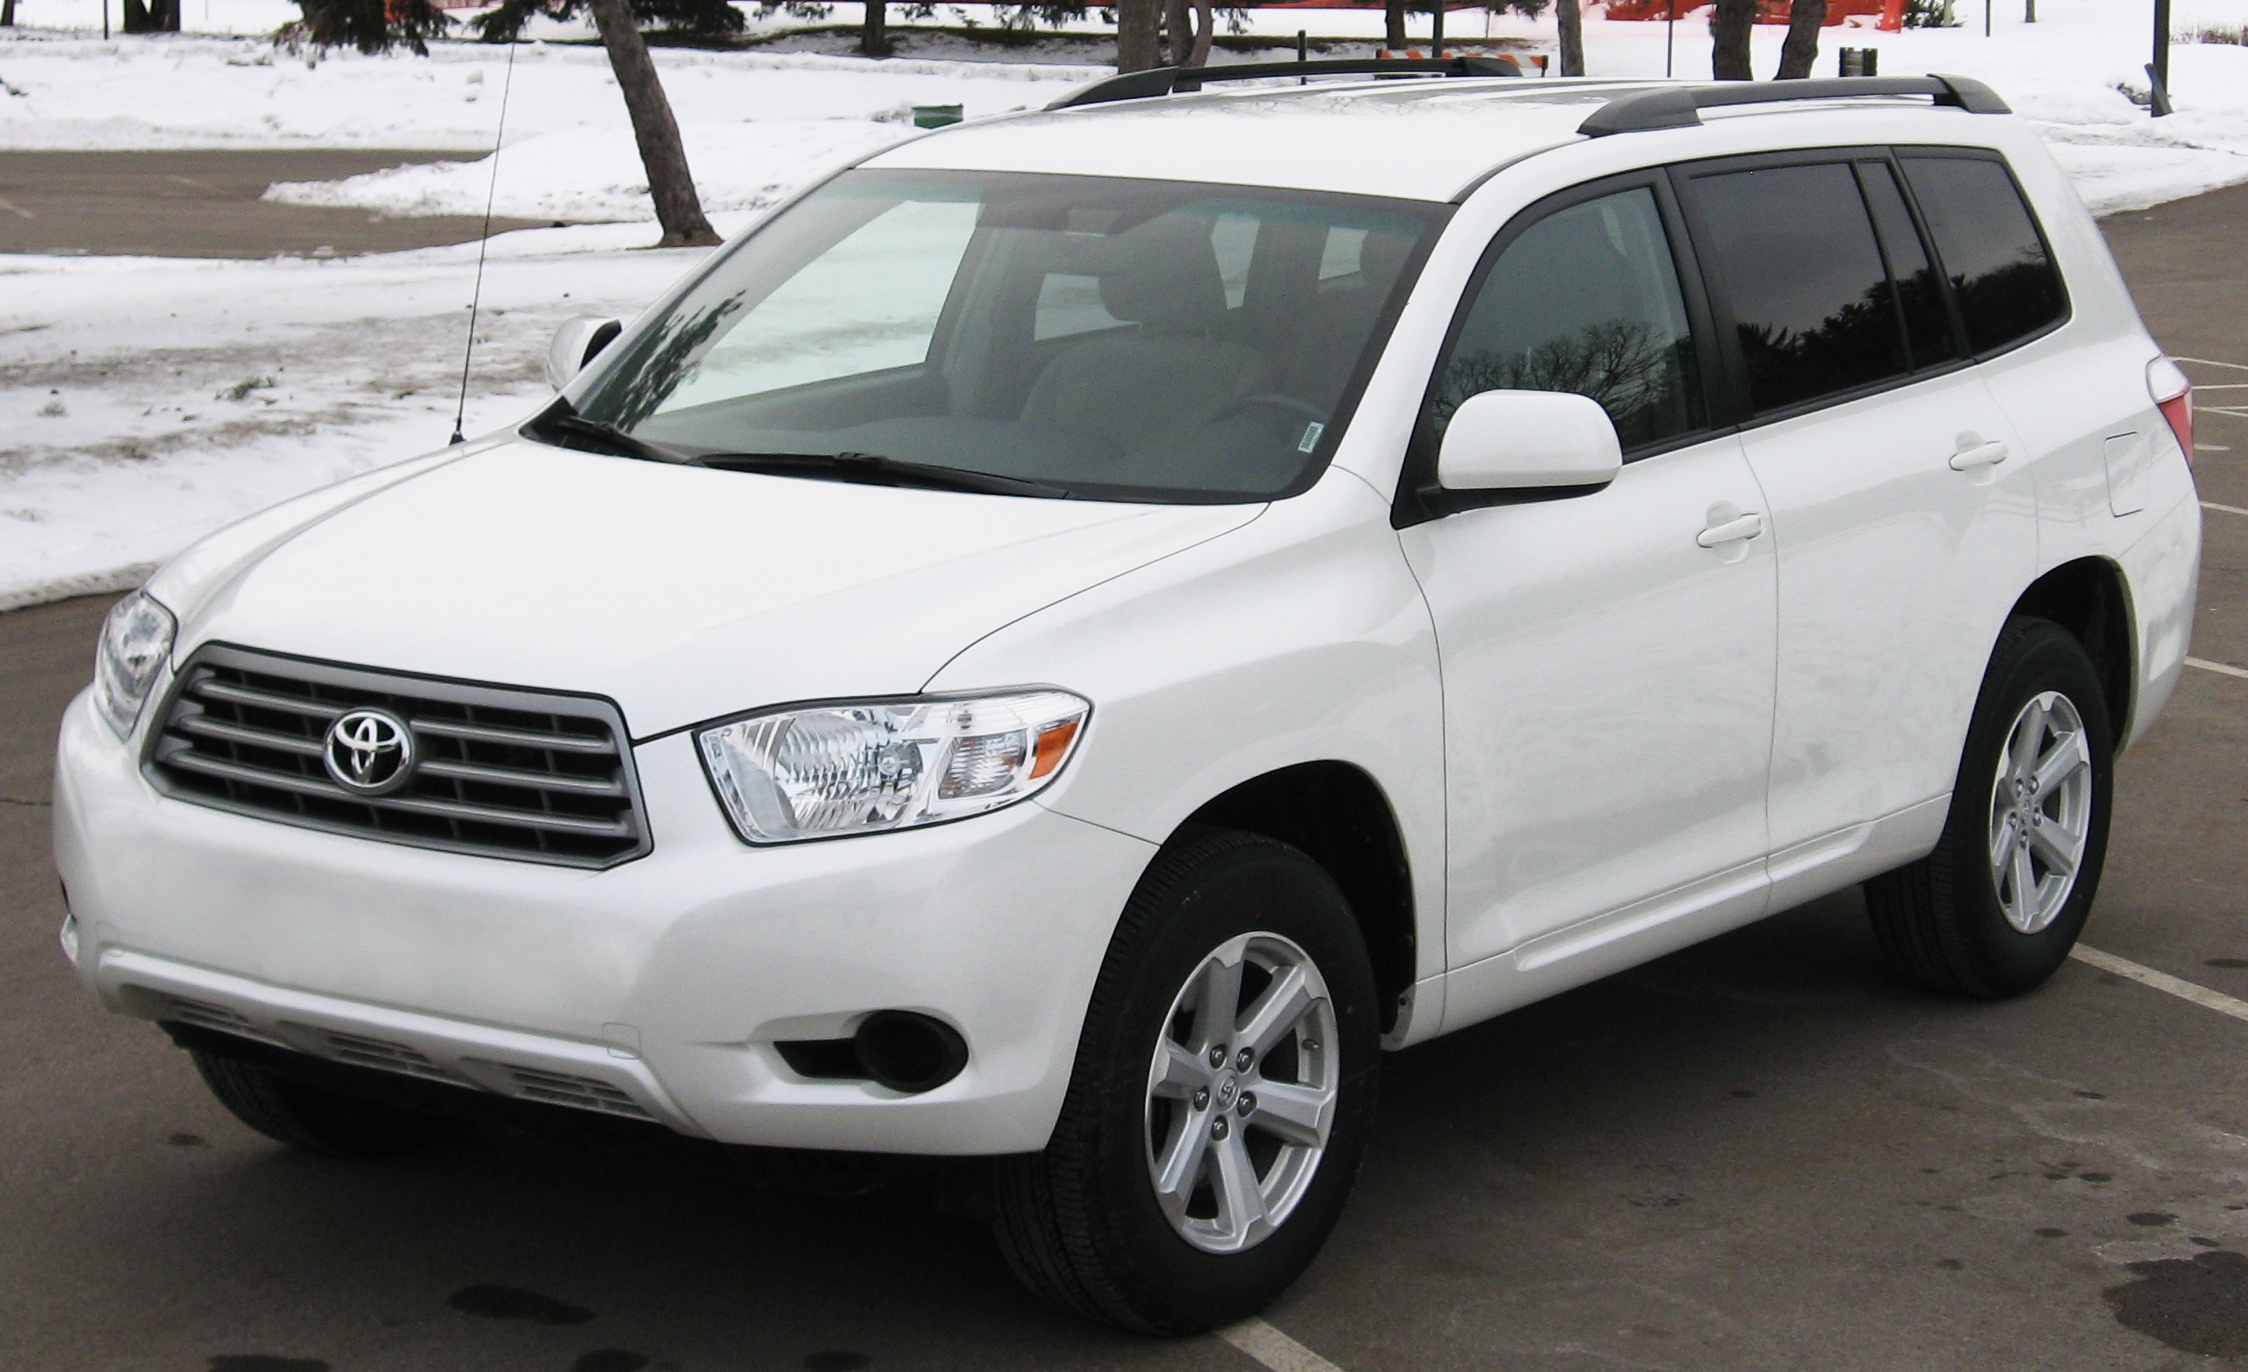 toyota highlander review and photos. Black Bedroom Furniture Sets. Home Design Ideas